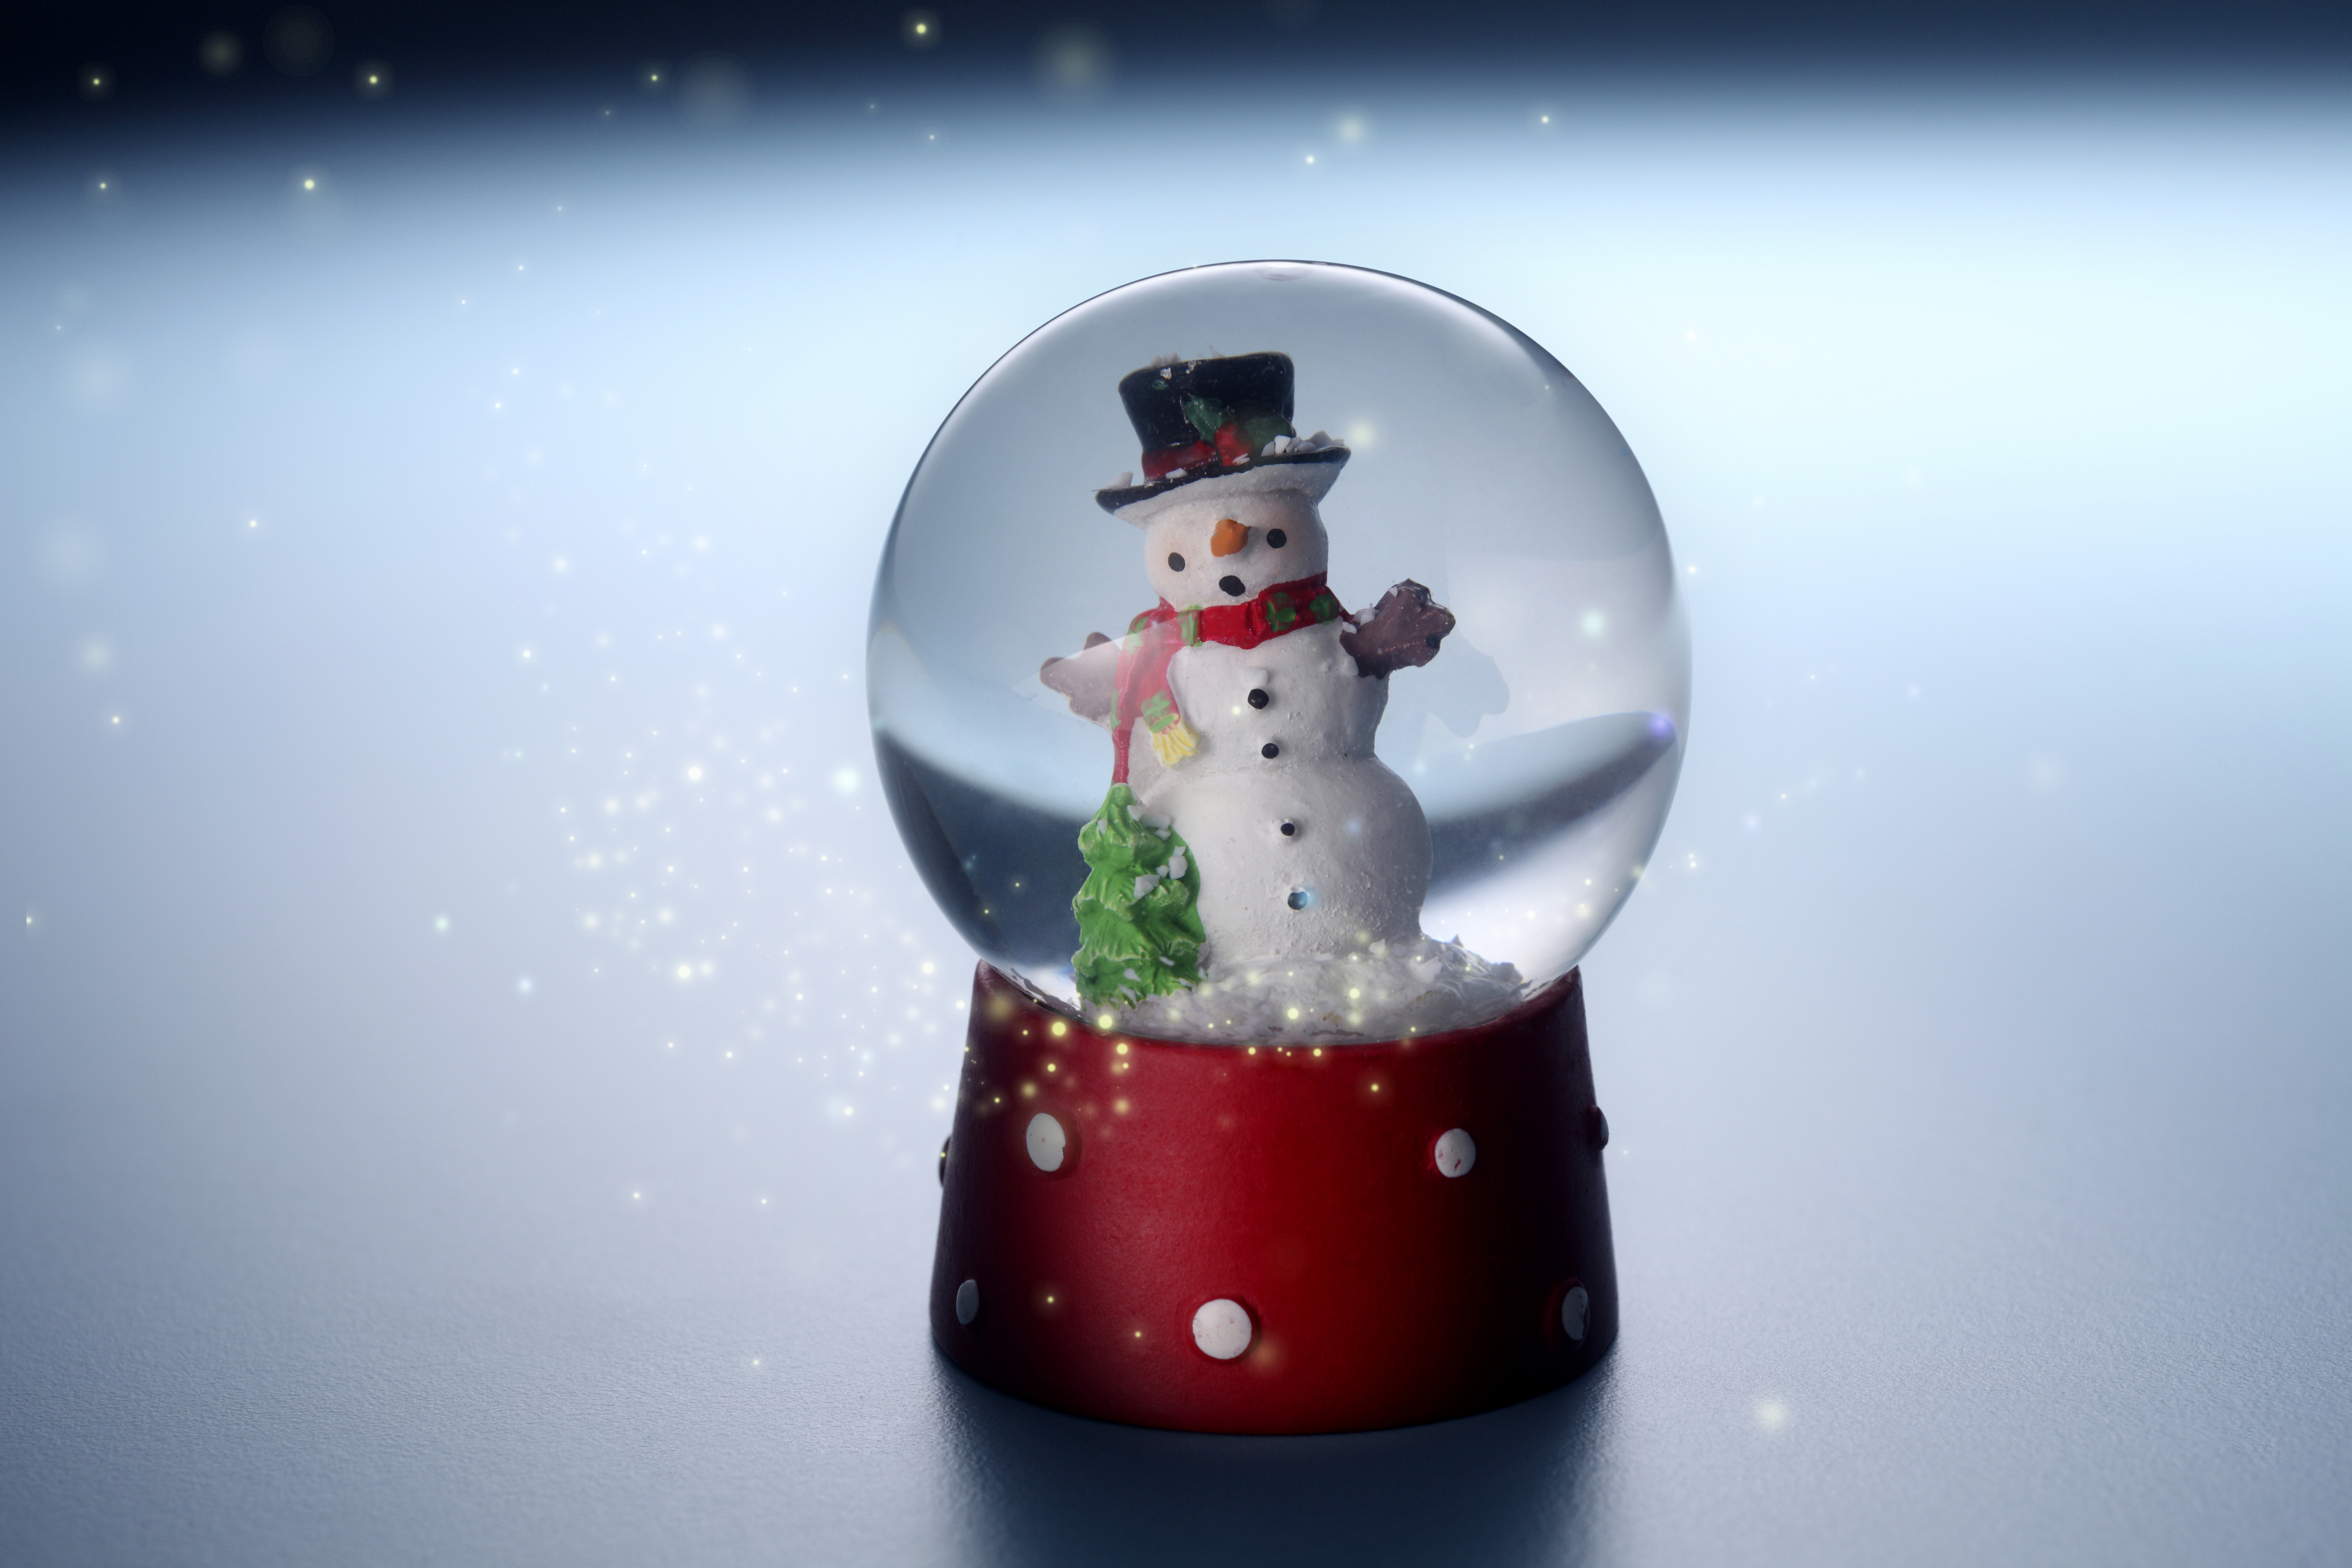 Christmas Snow Globes Australia.Snow Globes Filled With 1m Worth Of Meth Found In Australia